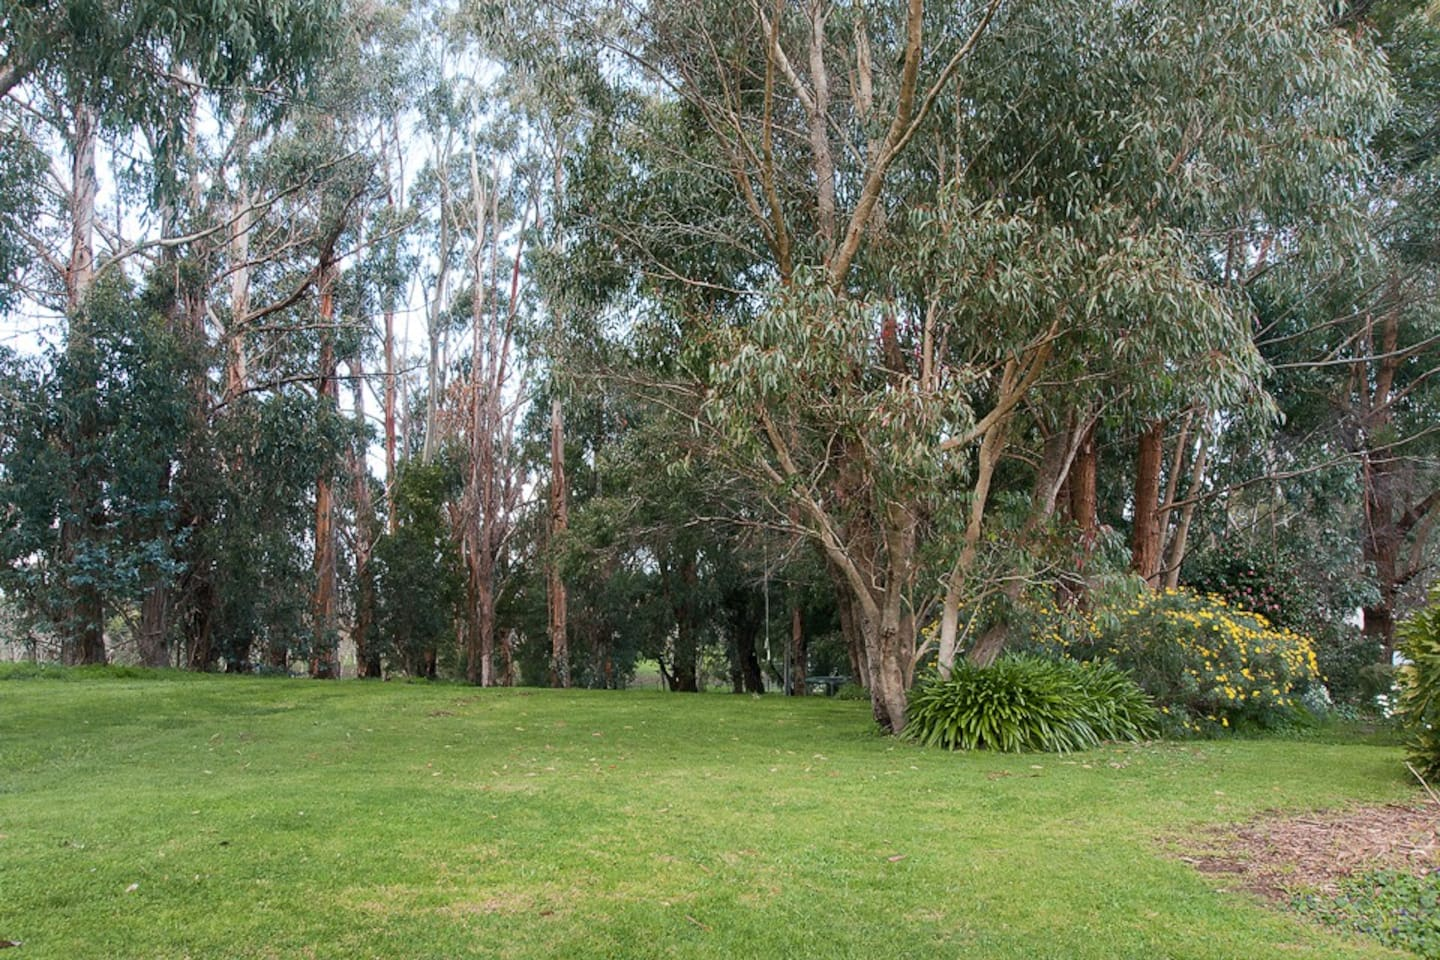 Large expansive lawn areas